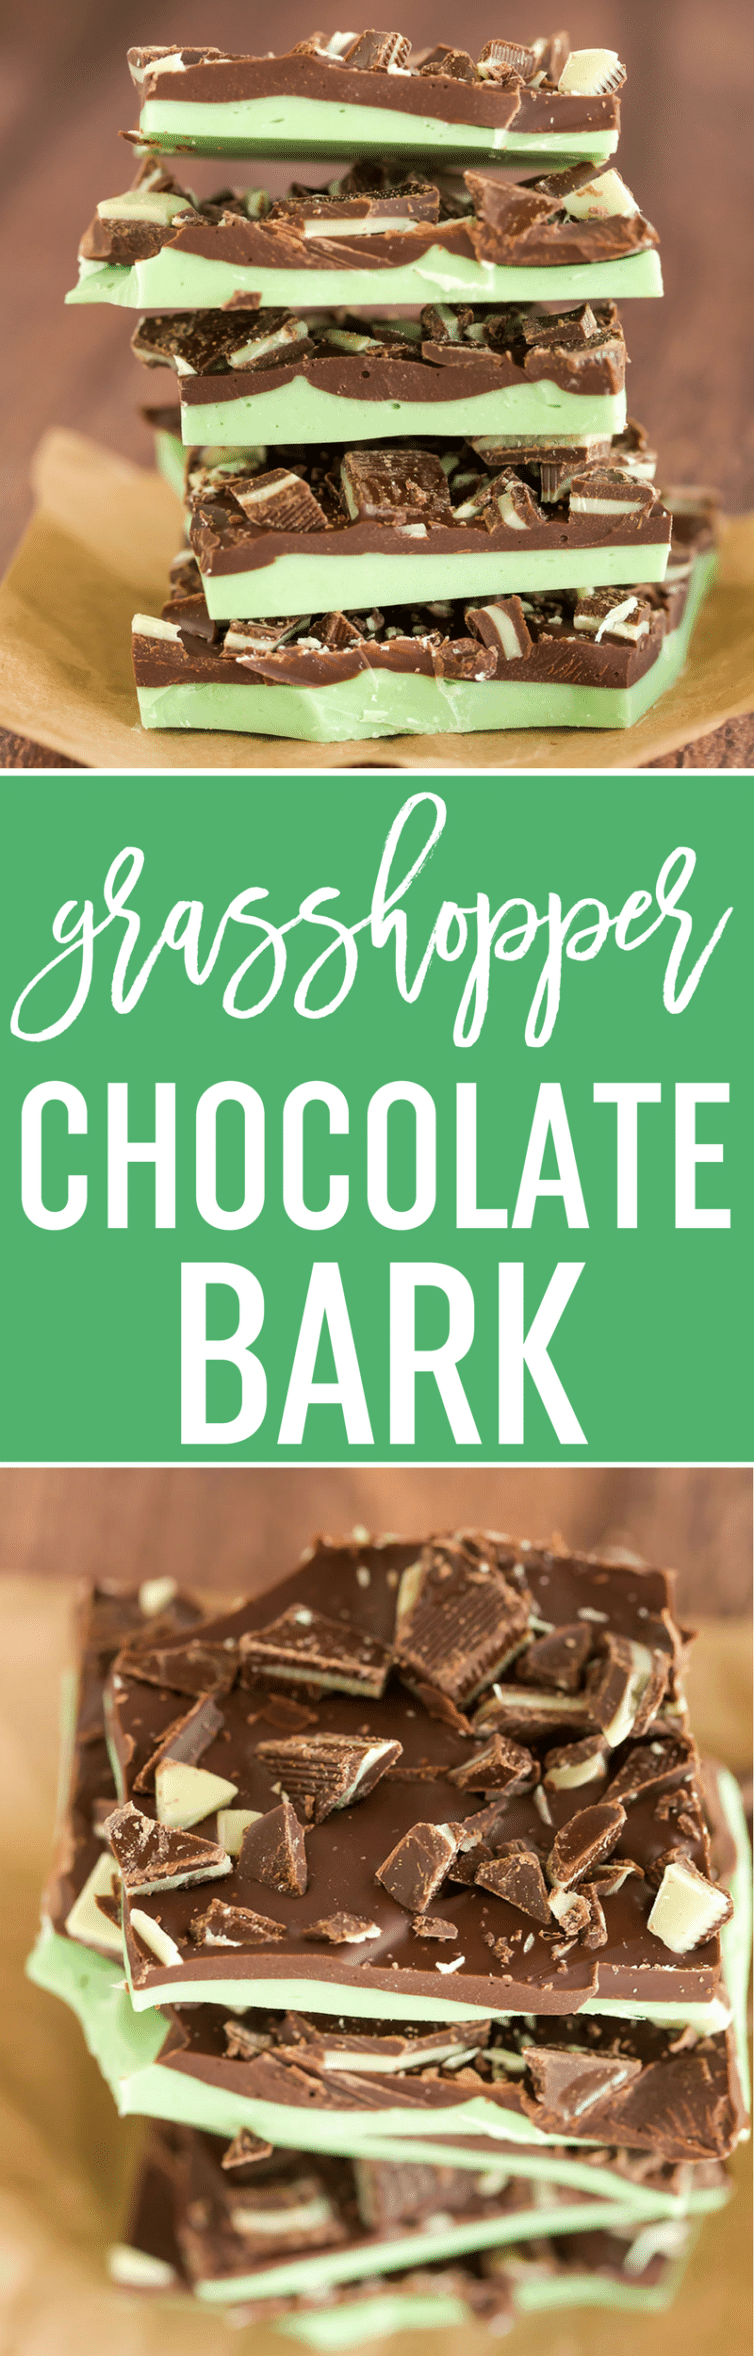 Grasshopper Chocolate Bark :: It combines the chocolate and mint flavors from the popular cocktail, minus the alcohol. Make it for your St. Patrick's Day party!